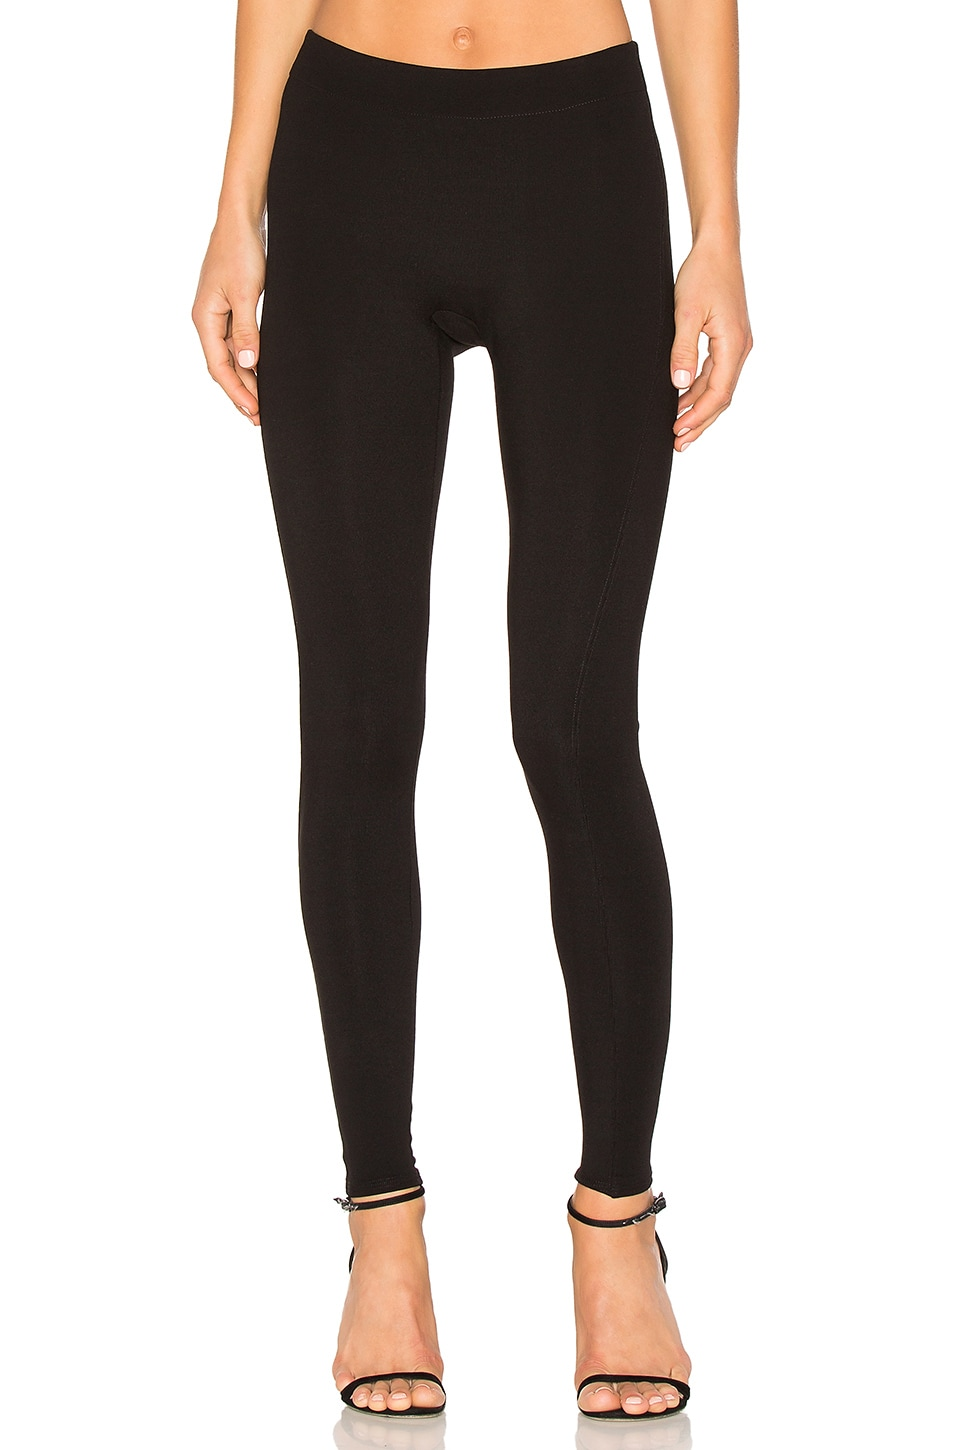 Halston Heritage Slim Fit Ribbed Leggings in Black